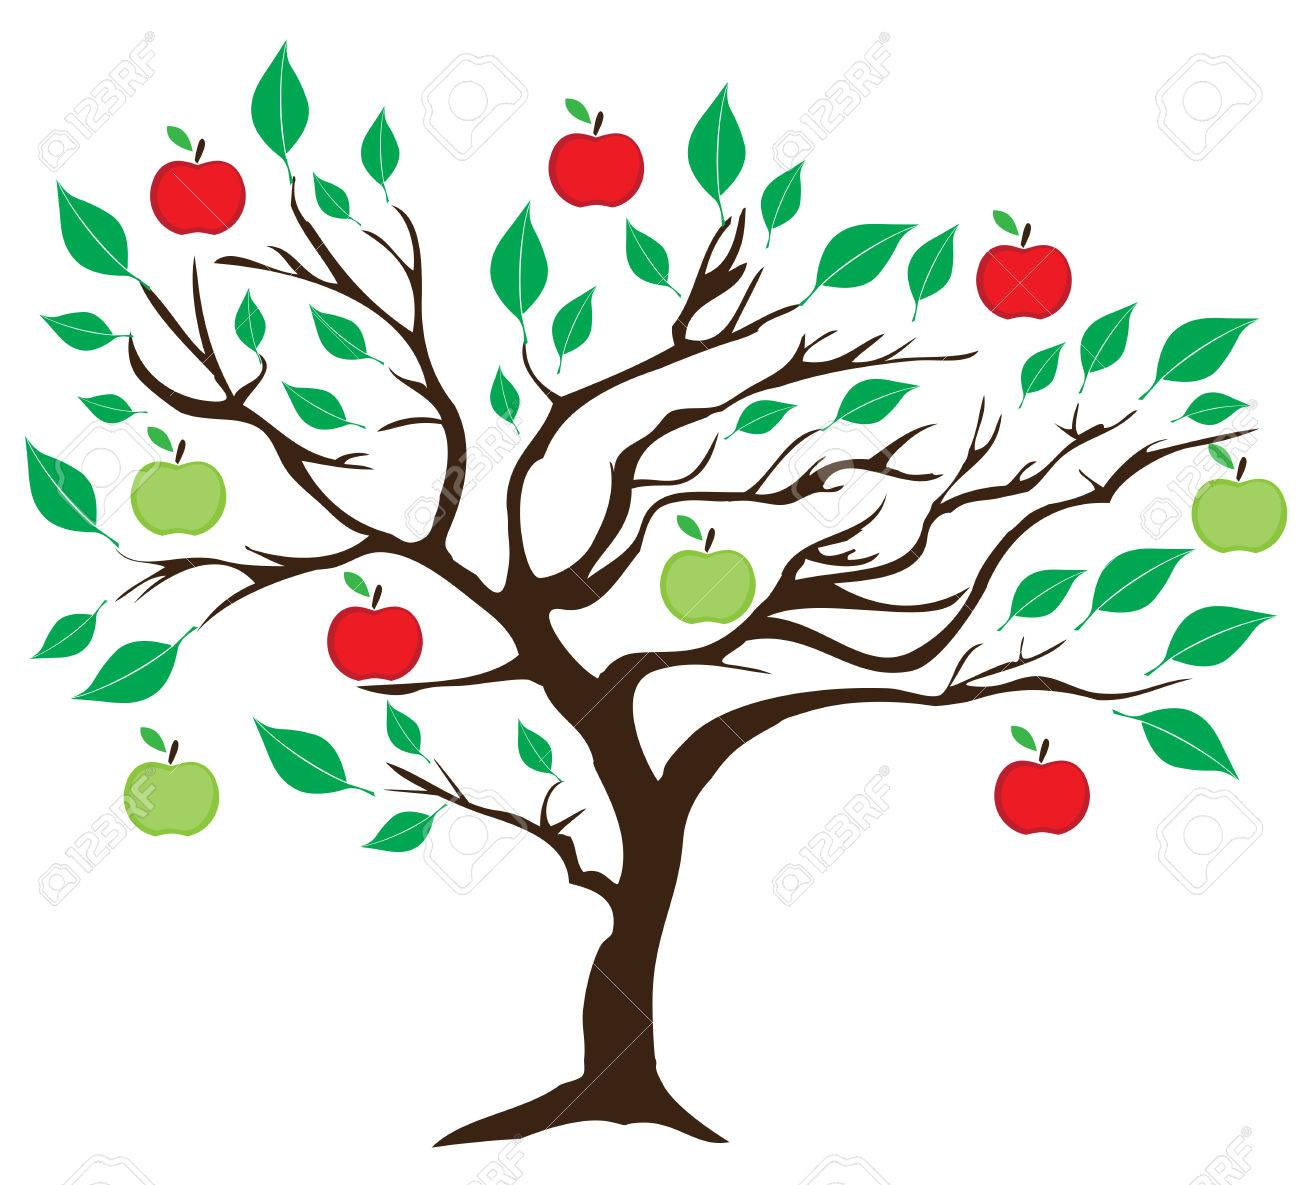 Vector Illustration Of An Apple Tree With Red And Green Apples